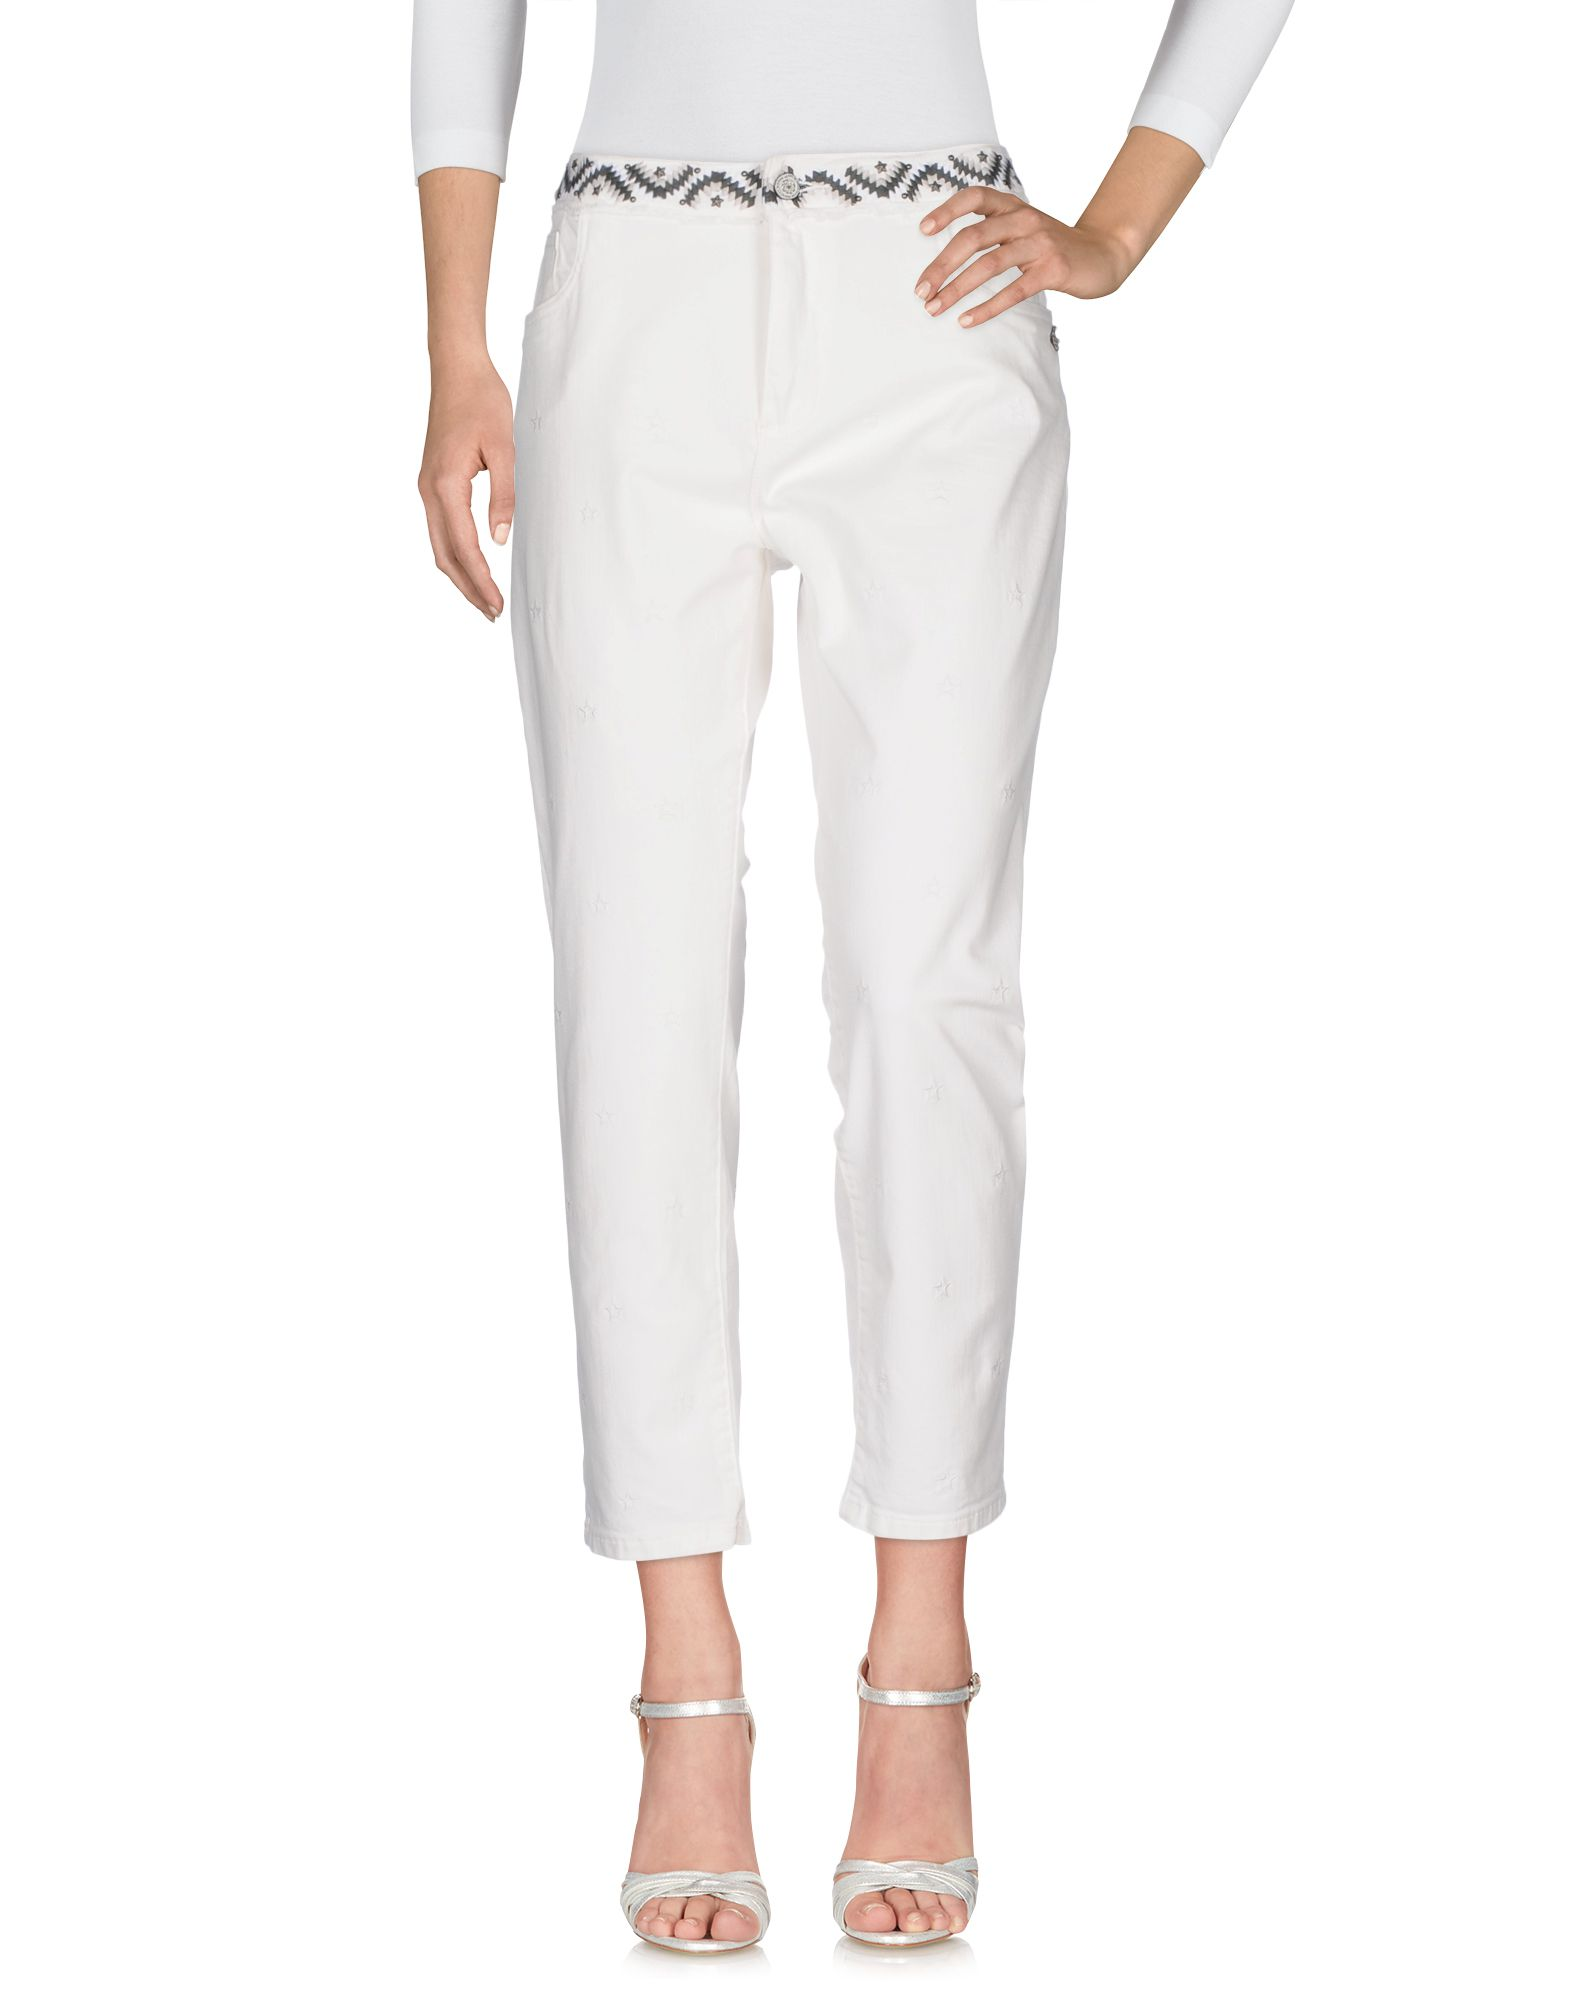 MAISON SCOTCH Denim Pants in White